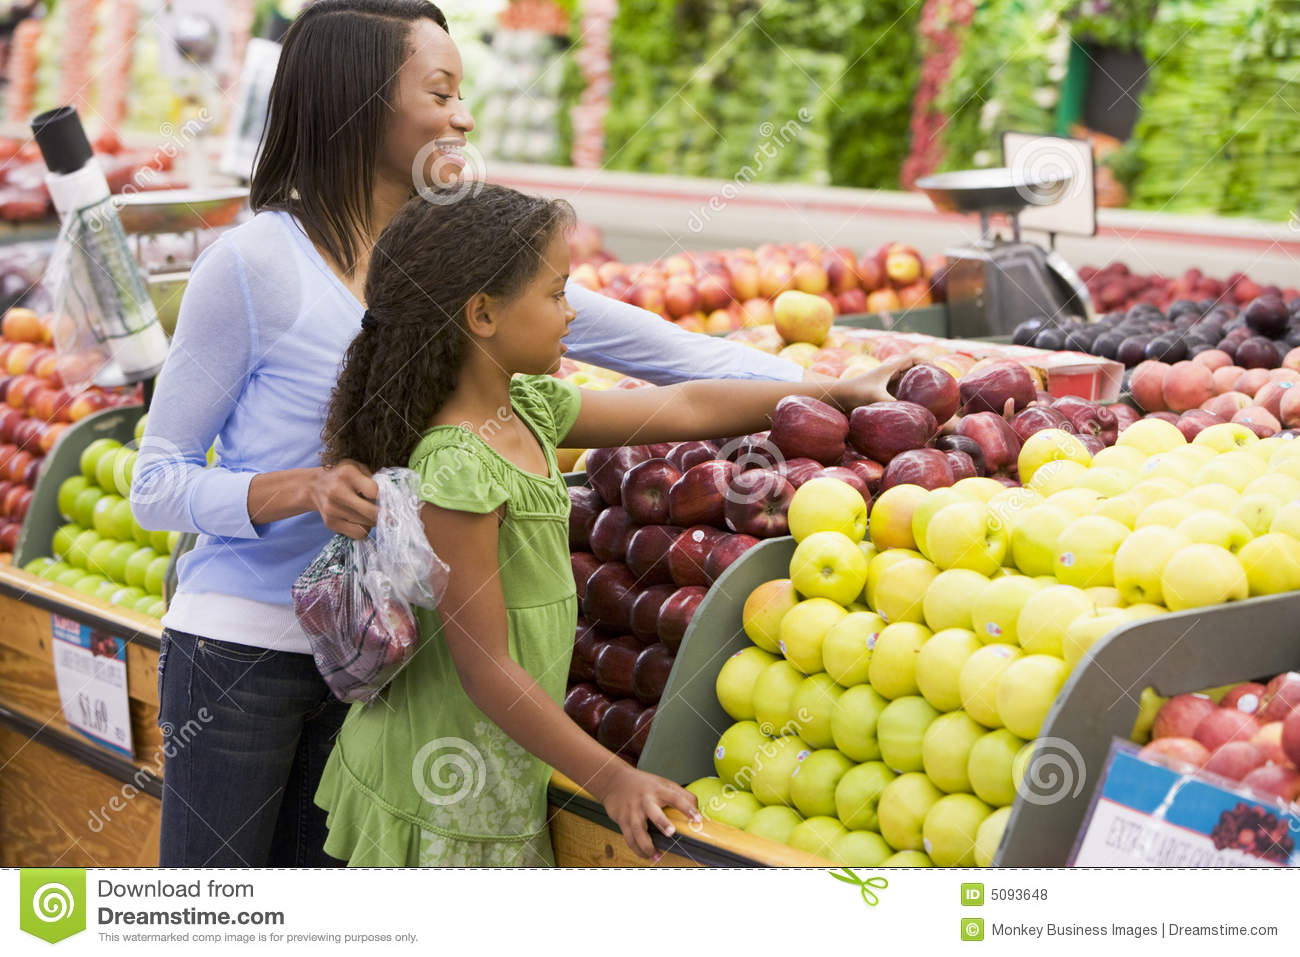 Daughter mother produce section